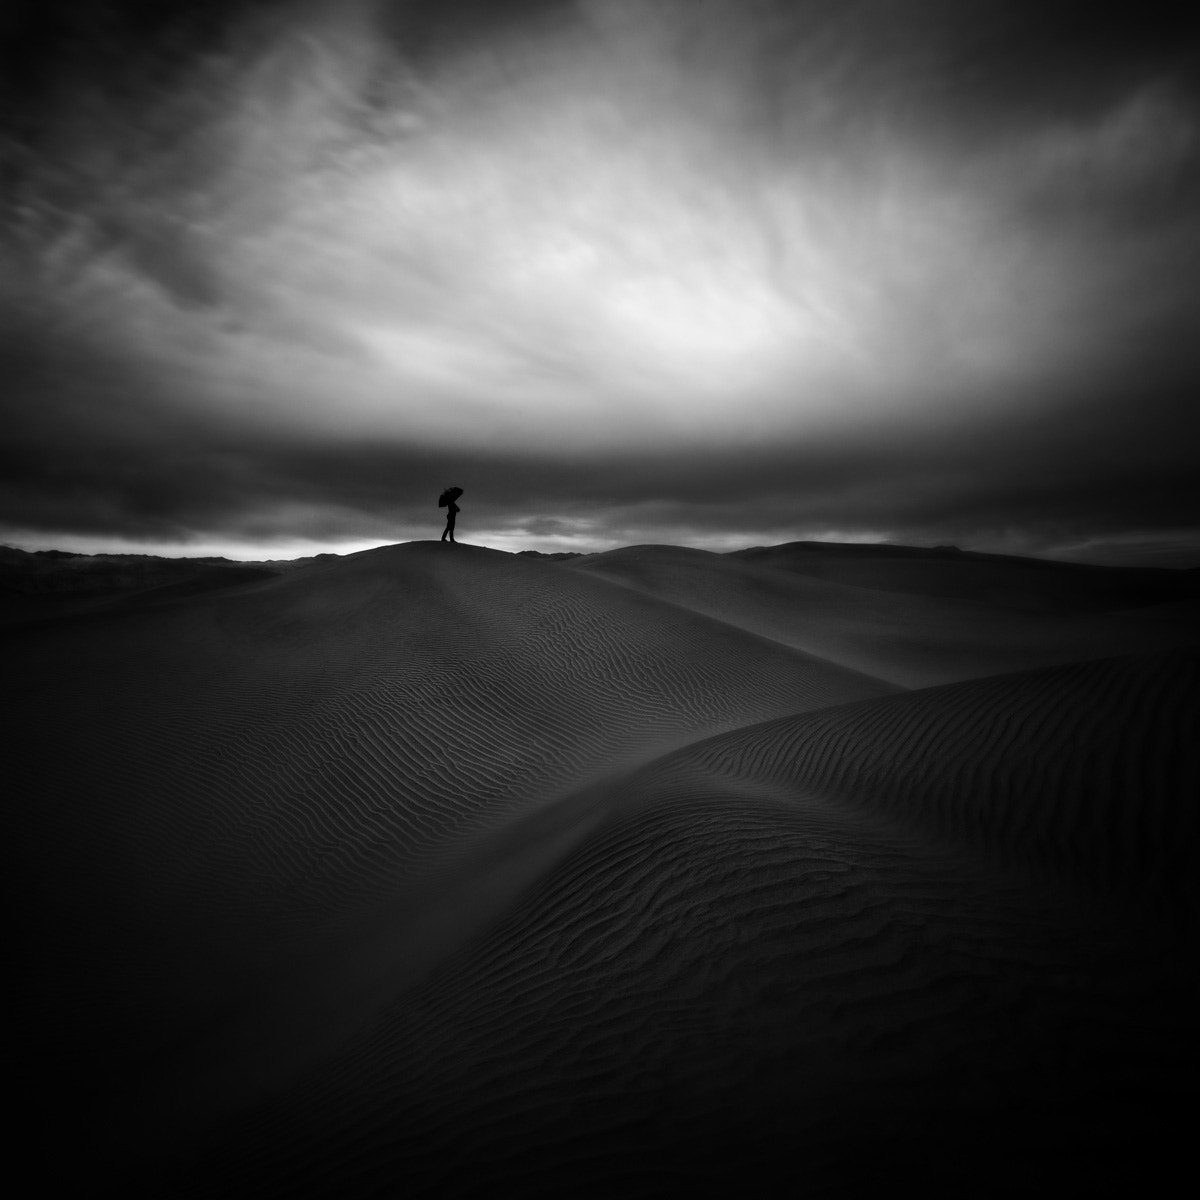 Photograph absence by jeff mercader on 500px